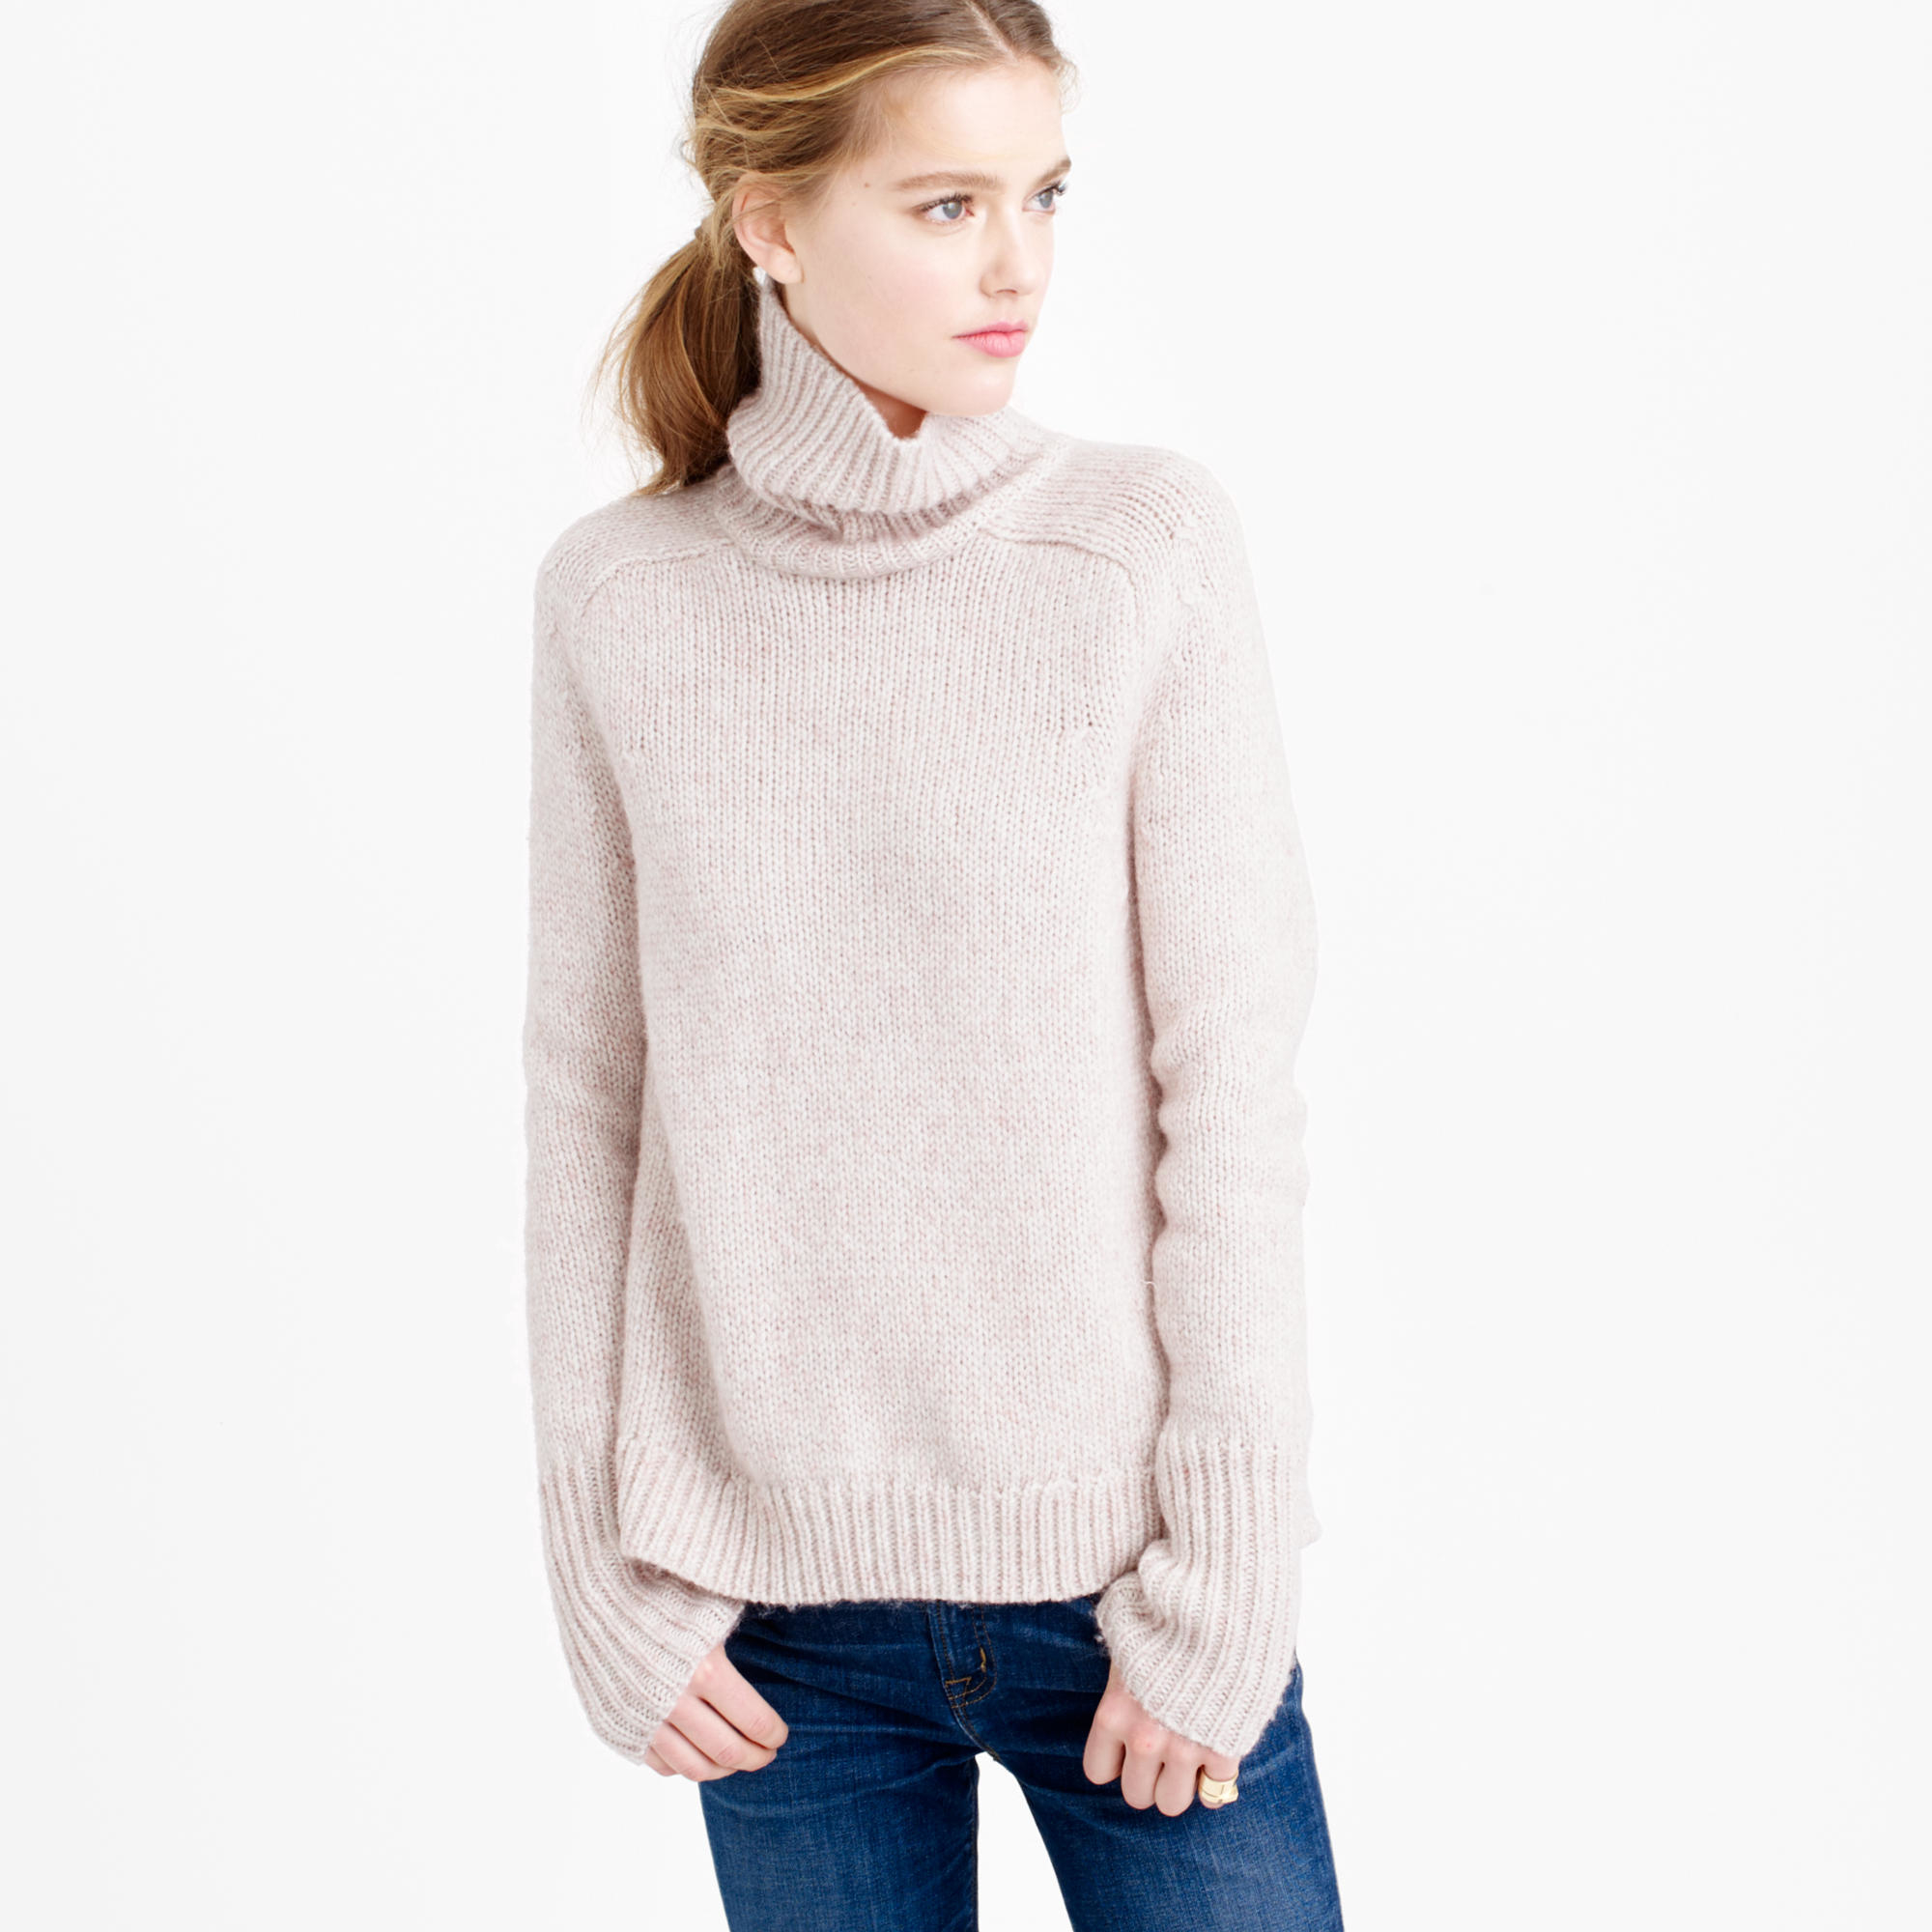 J.crew Marled Classic Turtleneck Sweater in Pink | Lyst